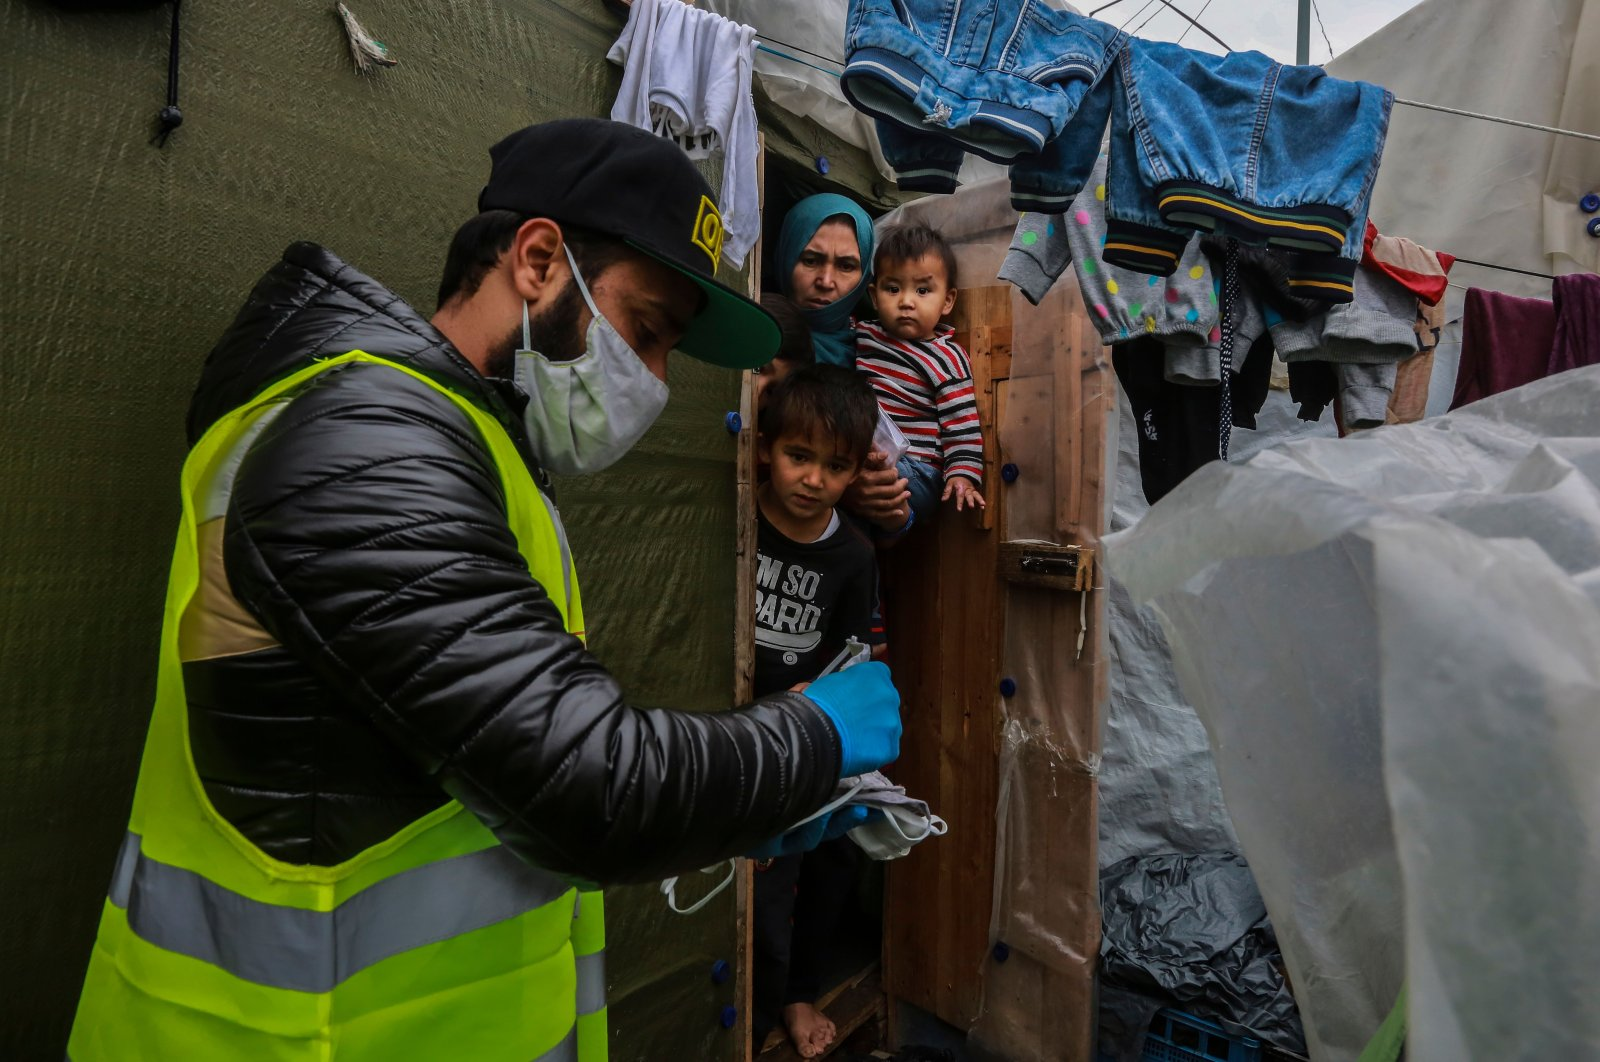 """A member of nongovernmental organization """"Team Humanity"""" shares handmade protective face masks with migrants and refugees in the camp of Moria on the island of Lesbos on Saturday, March 28, 2020 (AFP Photo)"""